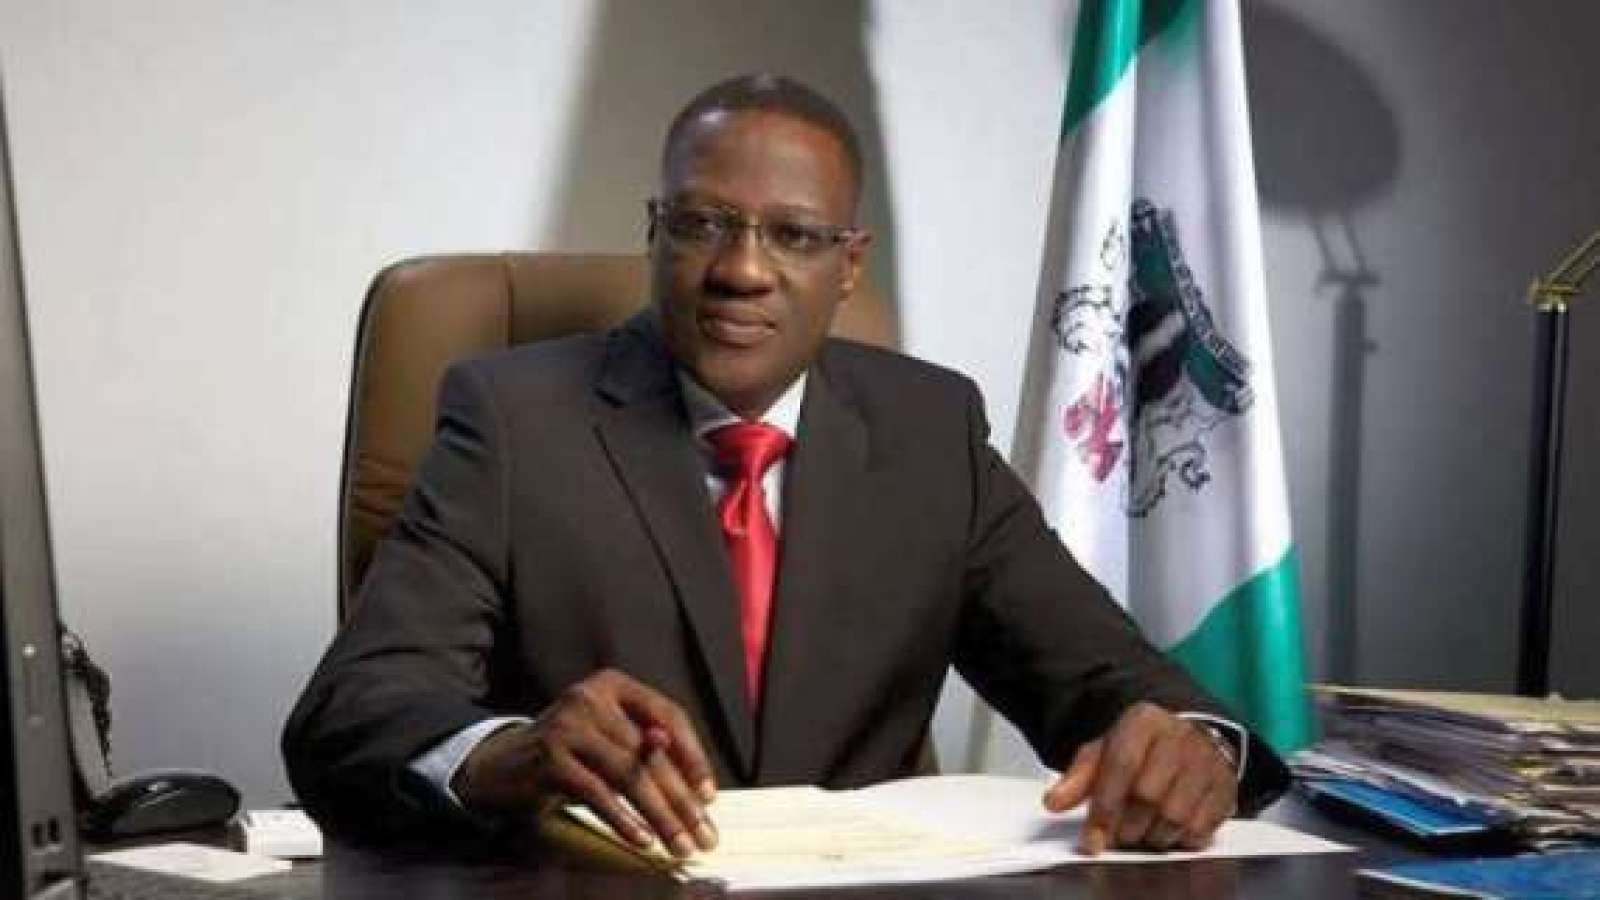 Kwara State Governor Ahmed approves minor cabinet reshuffle